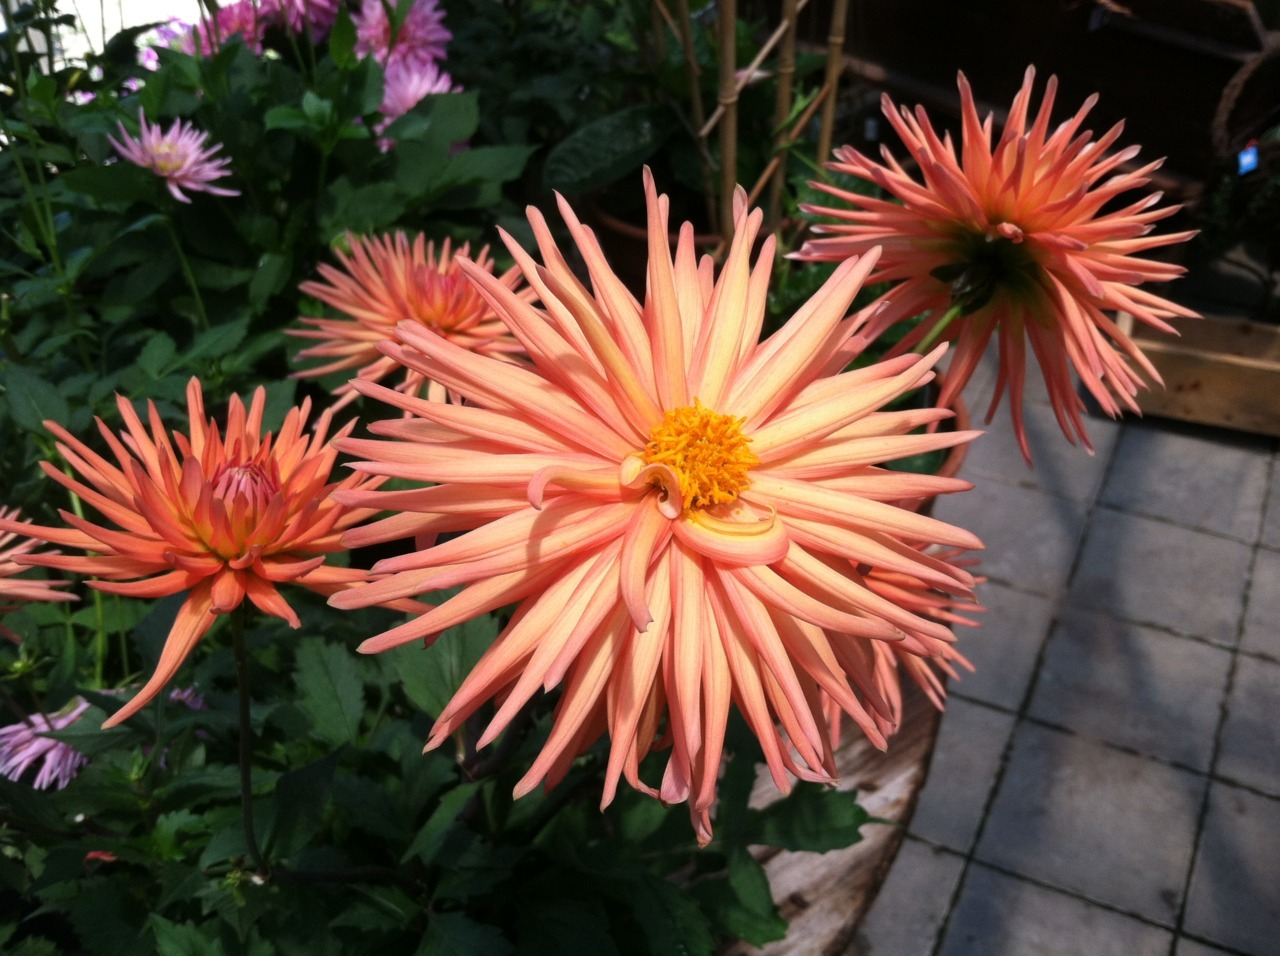 A Dahlia, of which there are many variations. All are members of the Dahlia genus. Photo by me.